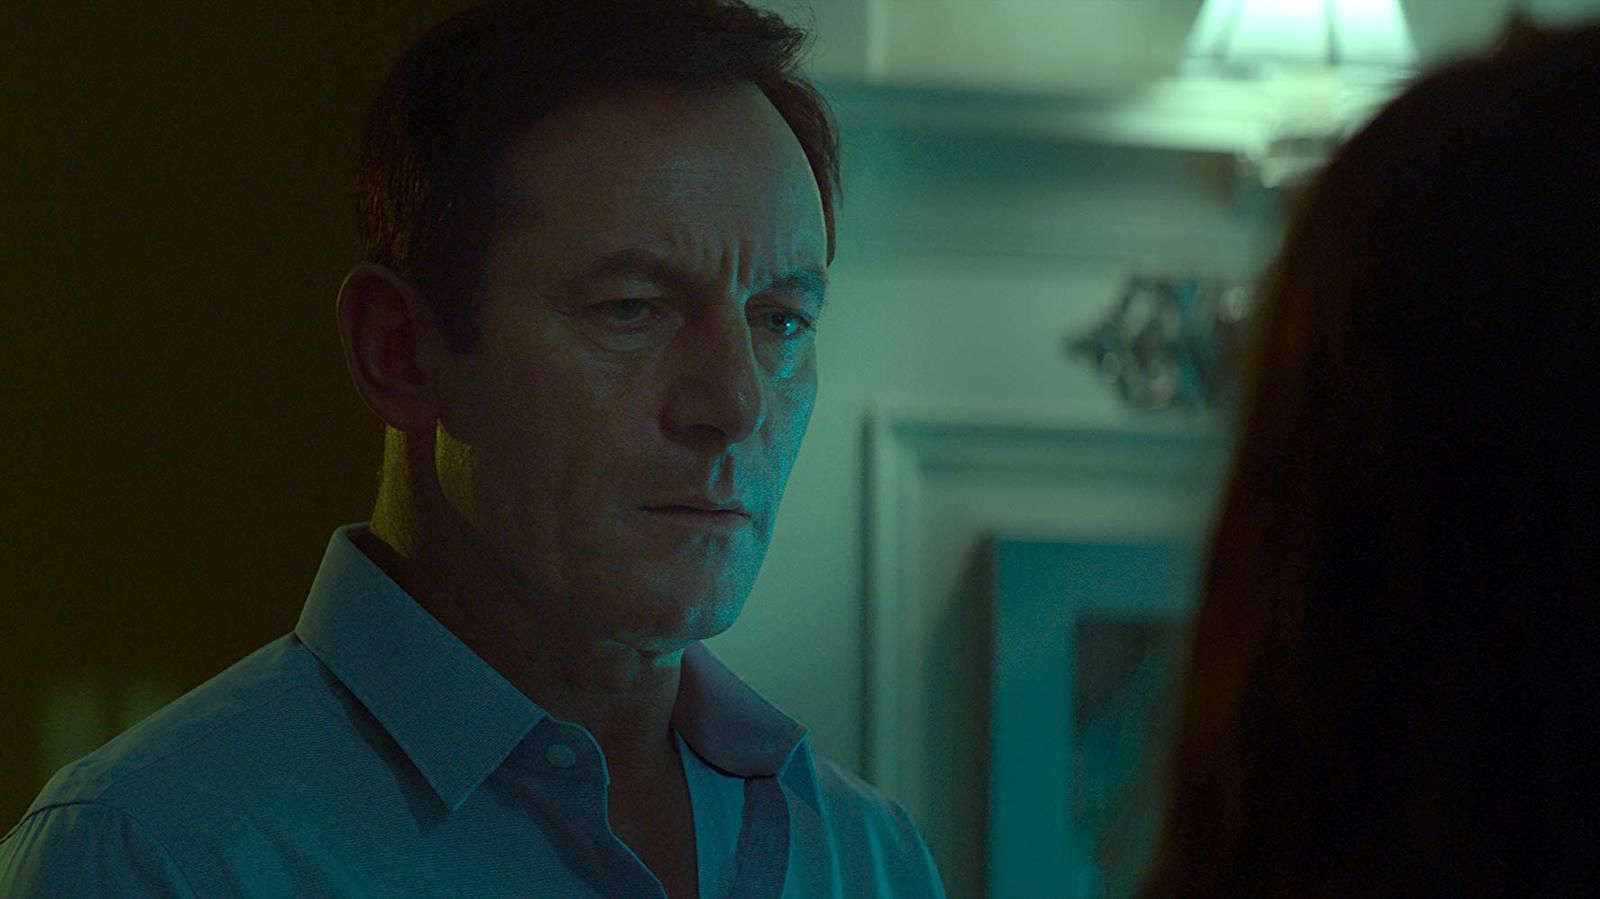 LOOK AWAY (BANDE-ANNONCE) avec Jason Isaacs, Mira Sorvino, India Eisley